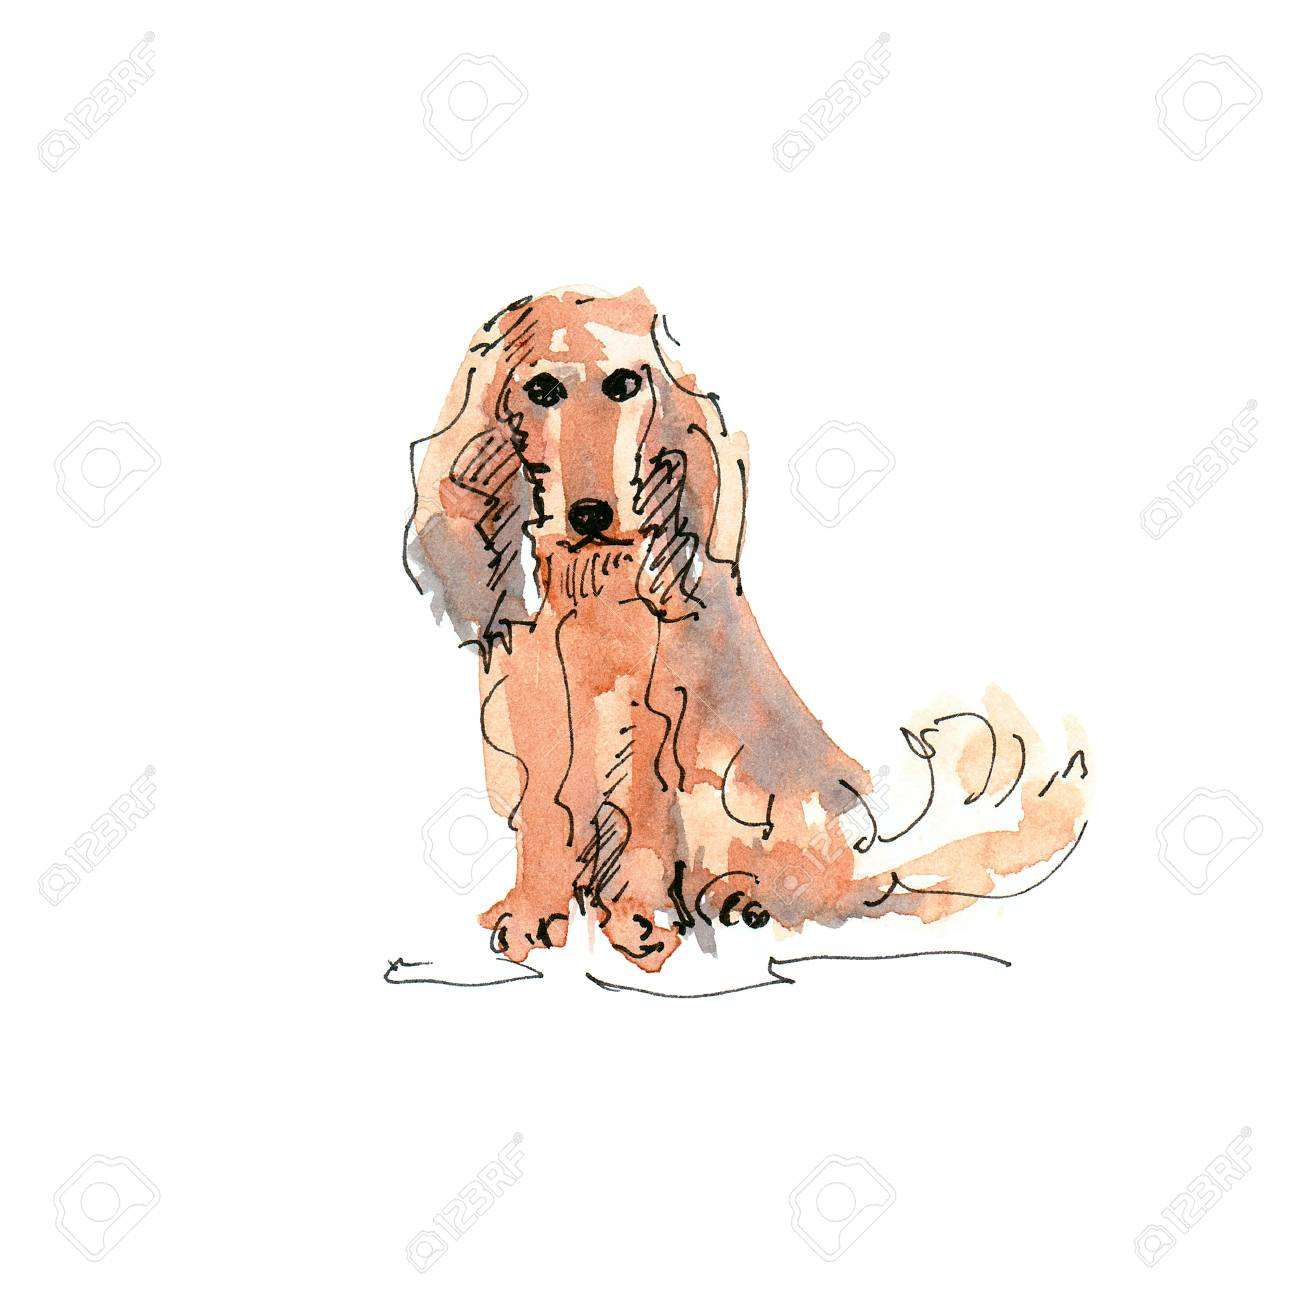 Watercolor illustration of Long-Haired Dachshund dog drawing isolated on white - 109991117